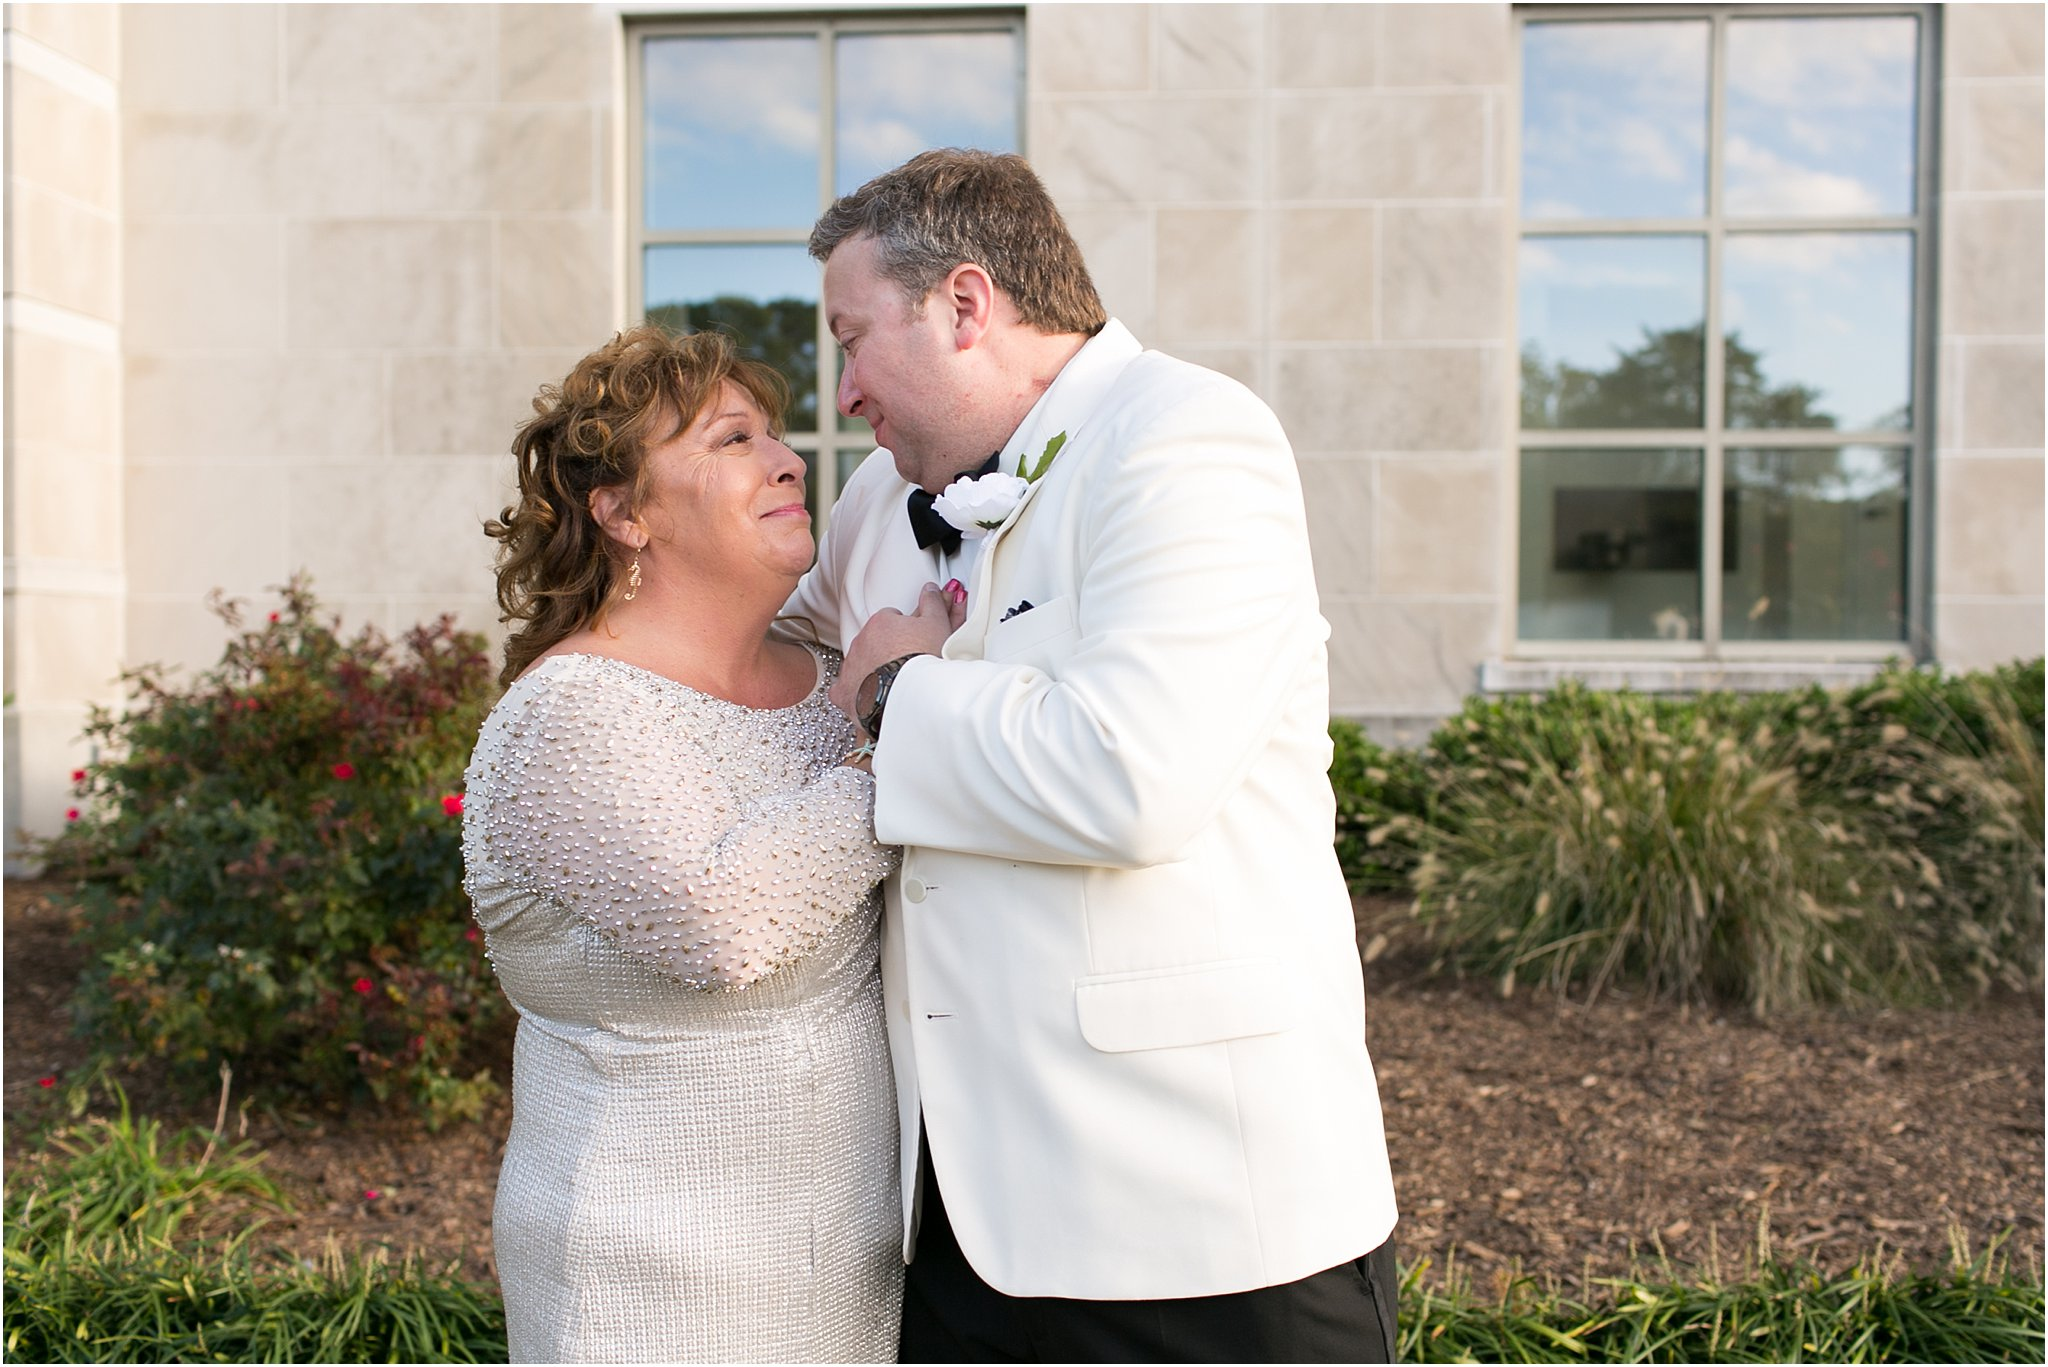 va_jessica_ryan_photography_virginia_wedding_norfolk_harrison_opera_house_norfolk_arts_district_portraits_3793